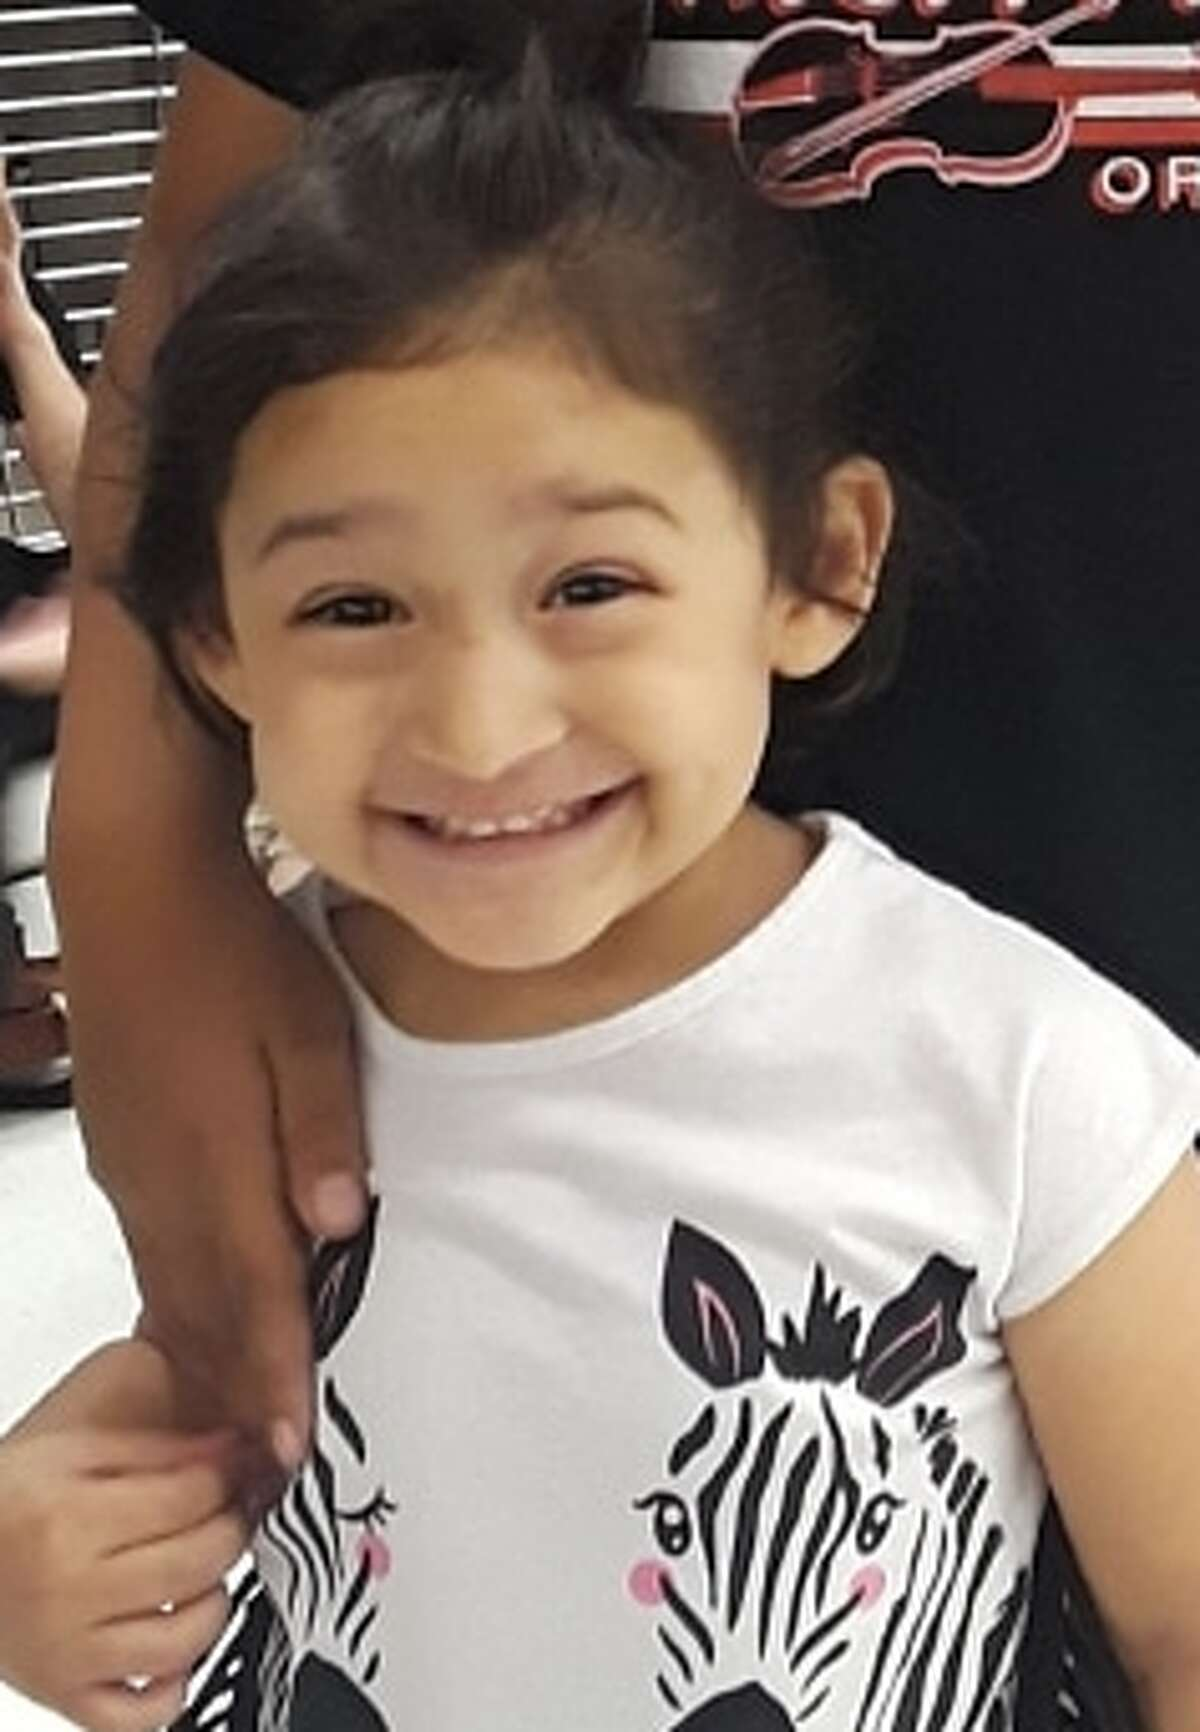 Police are searching for Zanyah Lucio, a 3-year-old girl who authorities say was abducted on May 6, 2019.